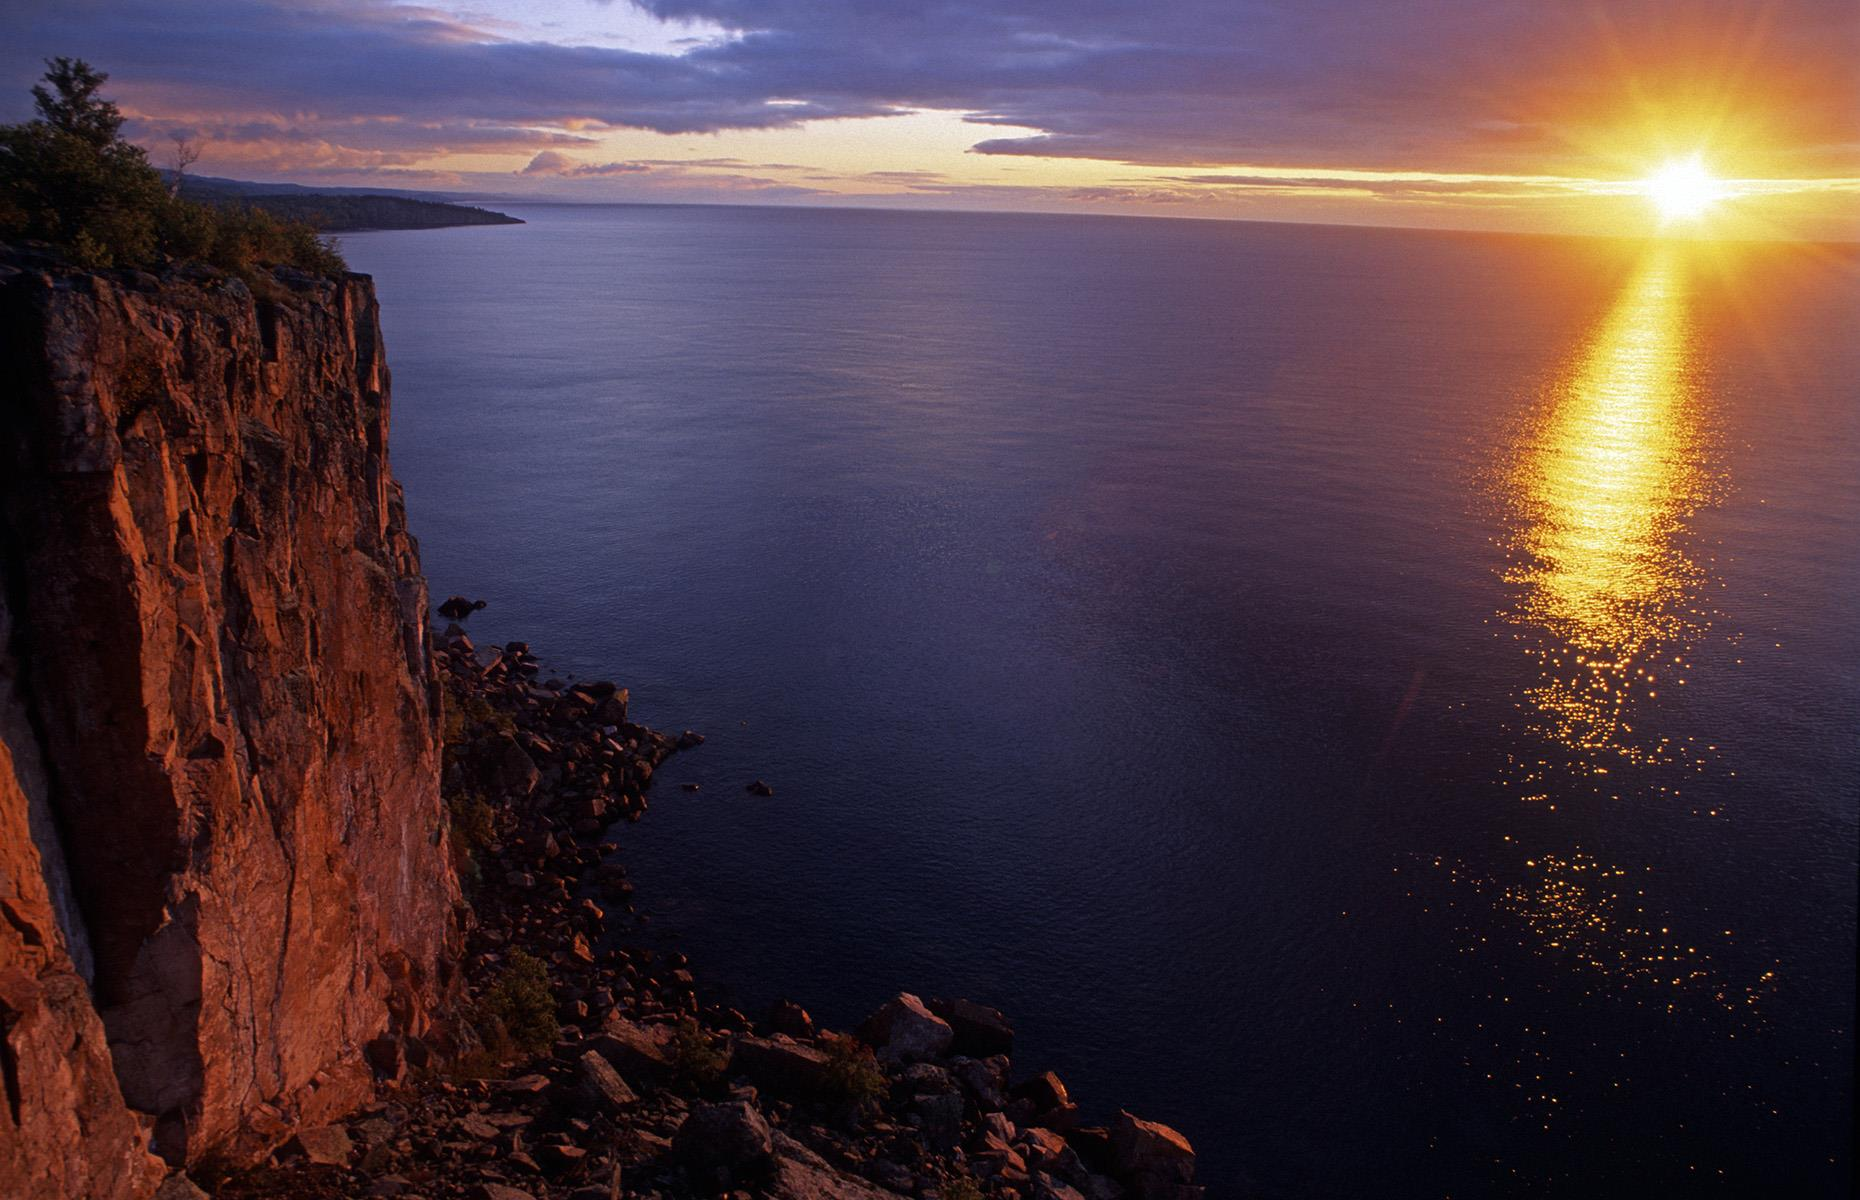 Slide 24 of 51: This huge, sheer-faced rock formation perches dramatically at the edge of Lake Superior's north shores, and sees glorious sunrises day after day. Dawn breaks its way through the skies and sends beams skimming across the lake's silvery surface, creating a bold contrast with the inky waters. Palisade Head is part of Tettegouche State Park, an endlessly inspiring landscape of forests, waterfalls and lakeside cliffs where peregrine falcons nest.